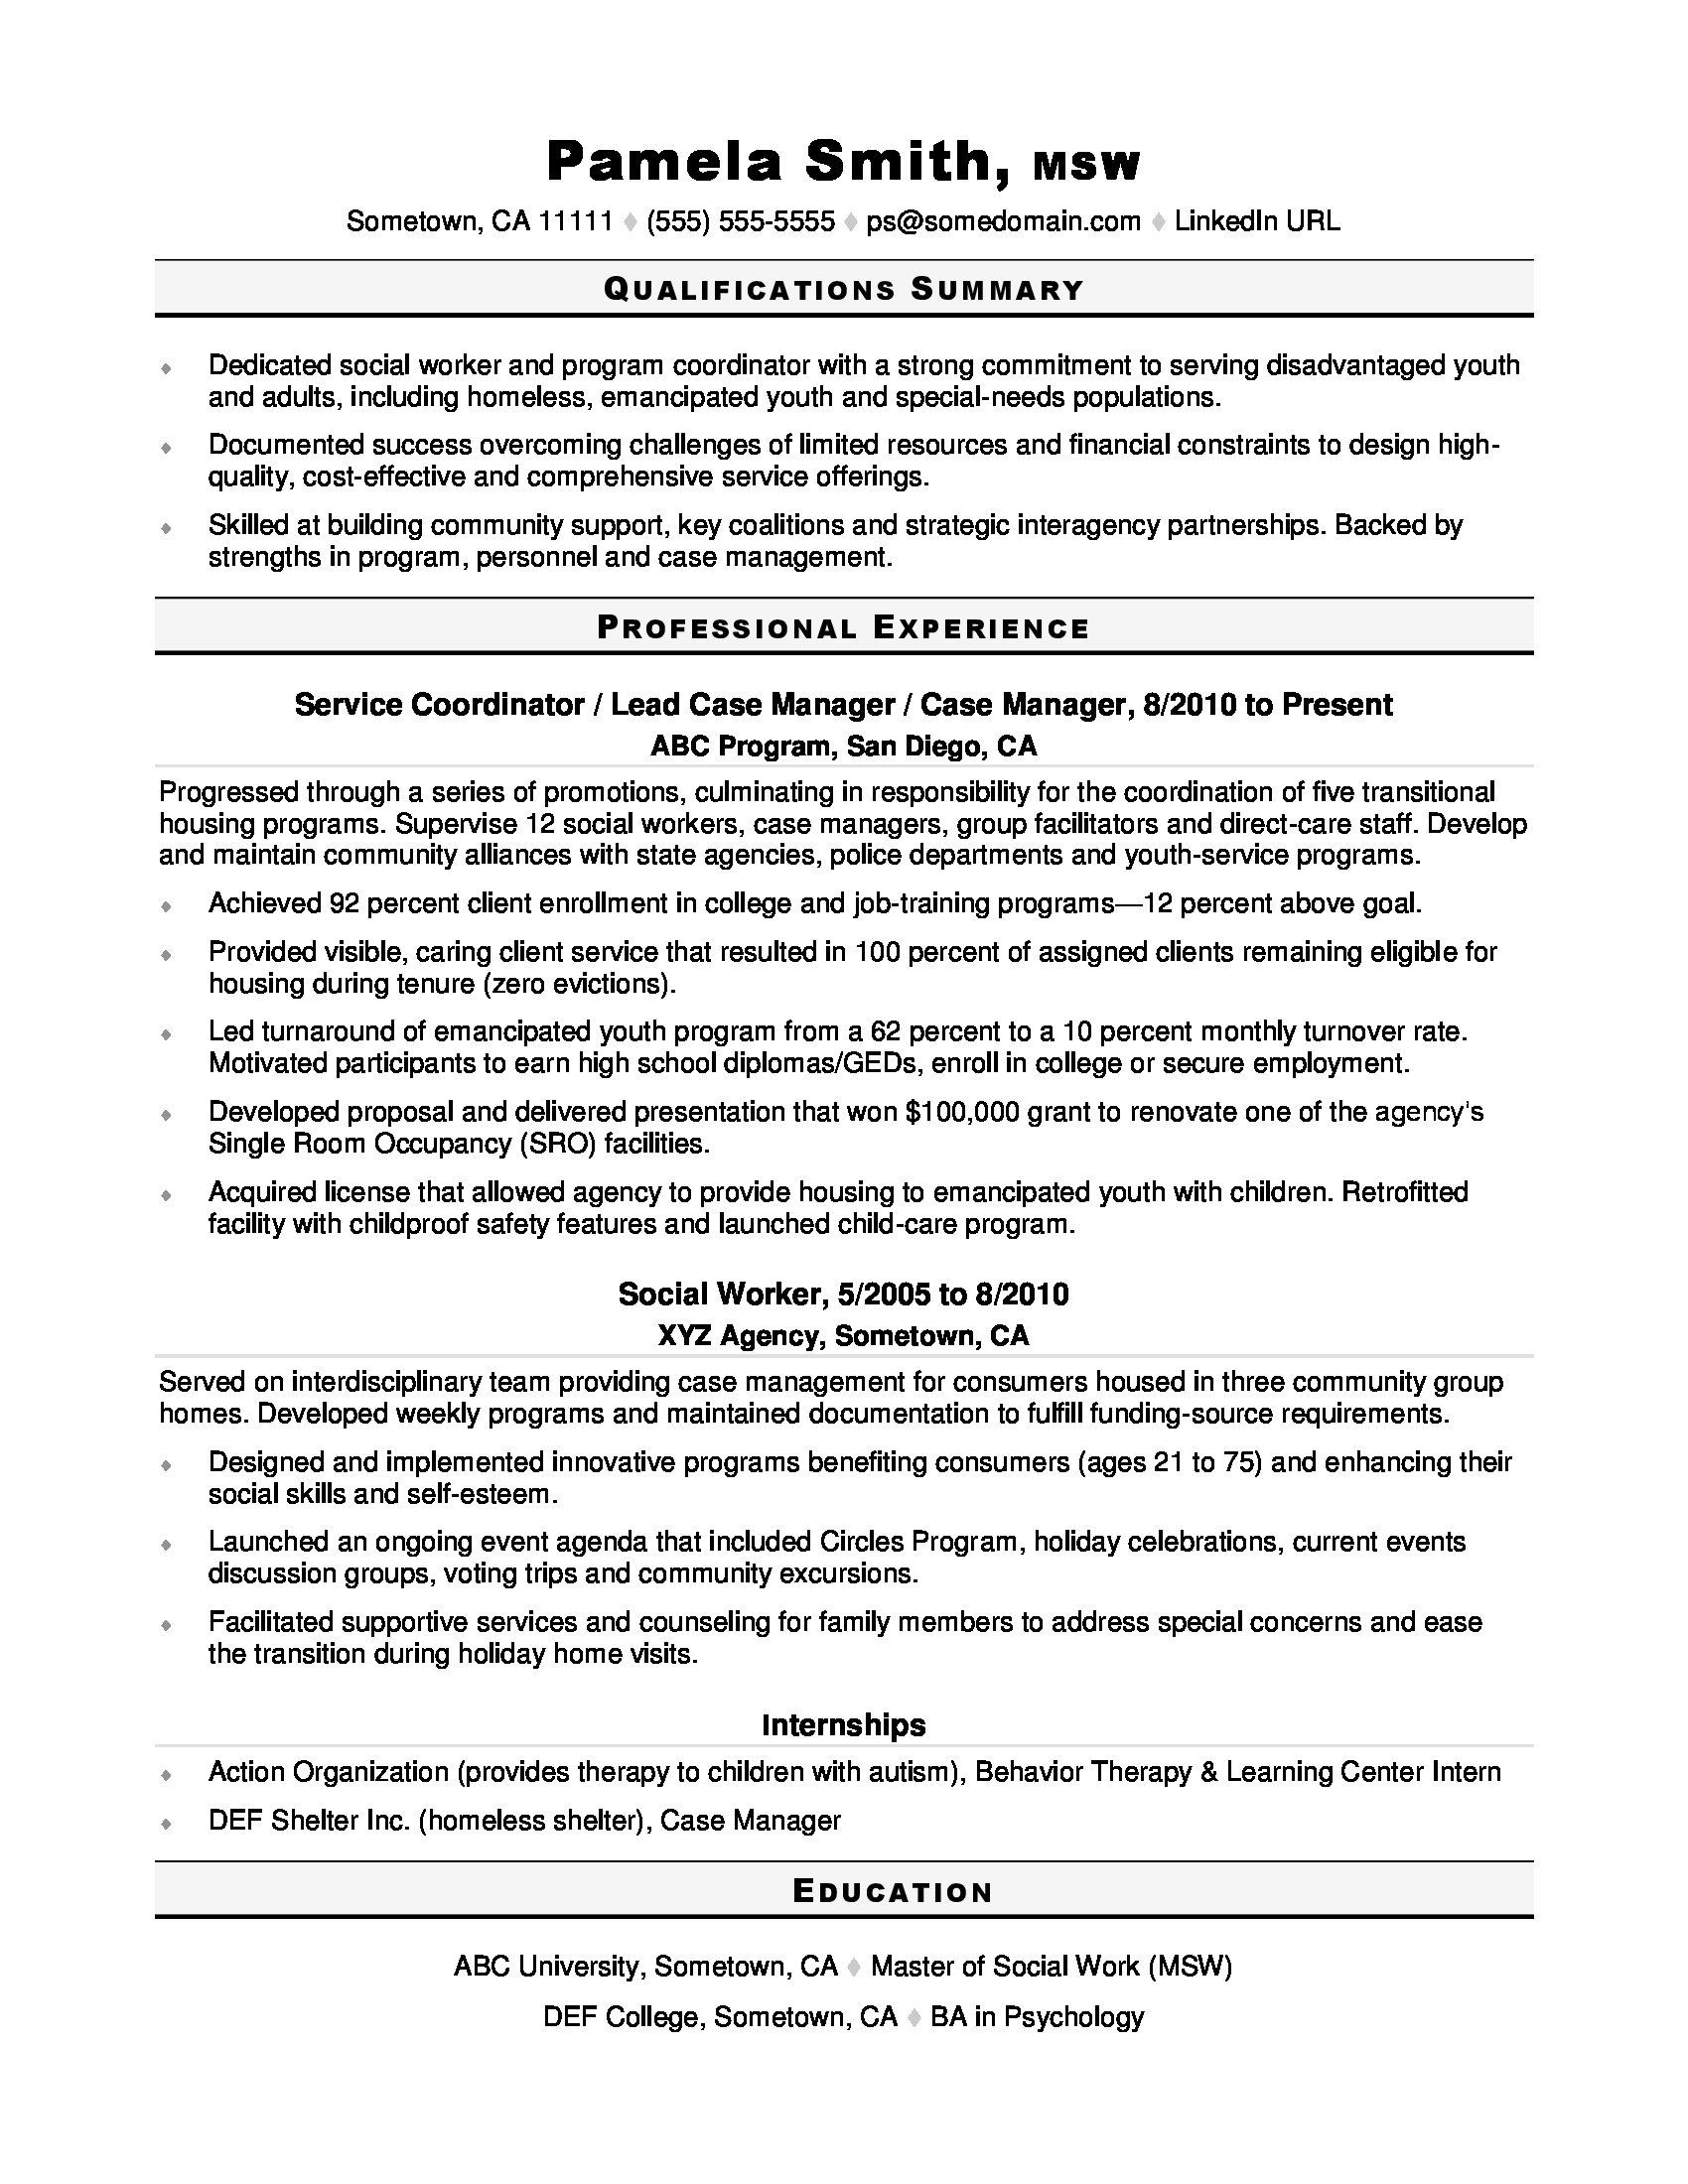 social worker resume sample monster community support template experience with software Resume Community Support Worker Resume Template